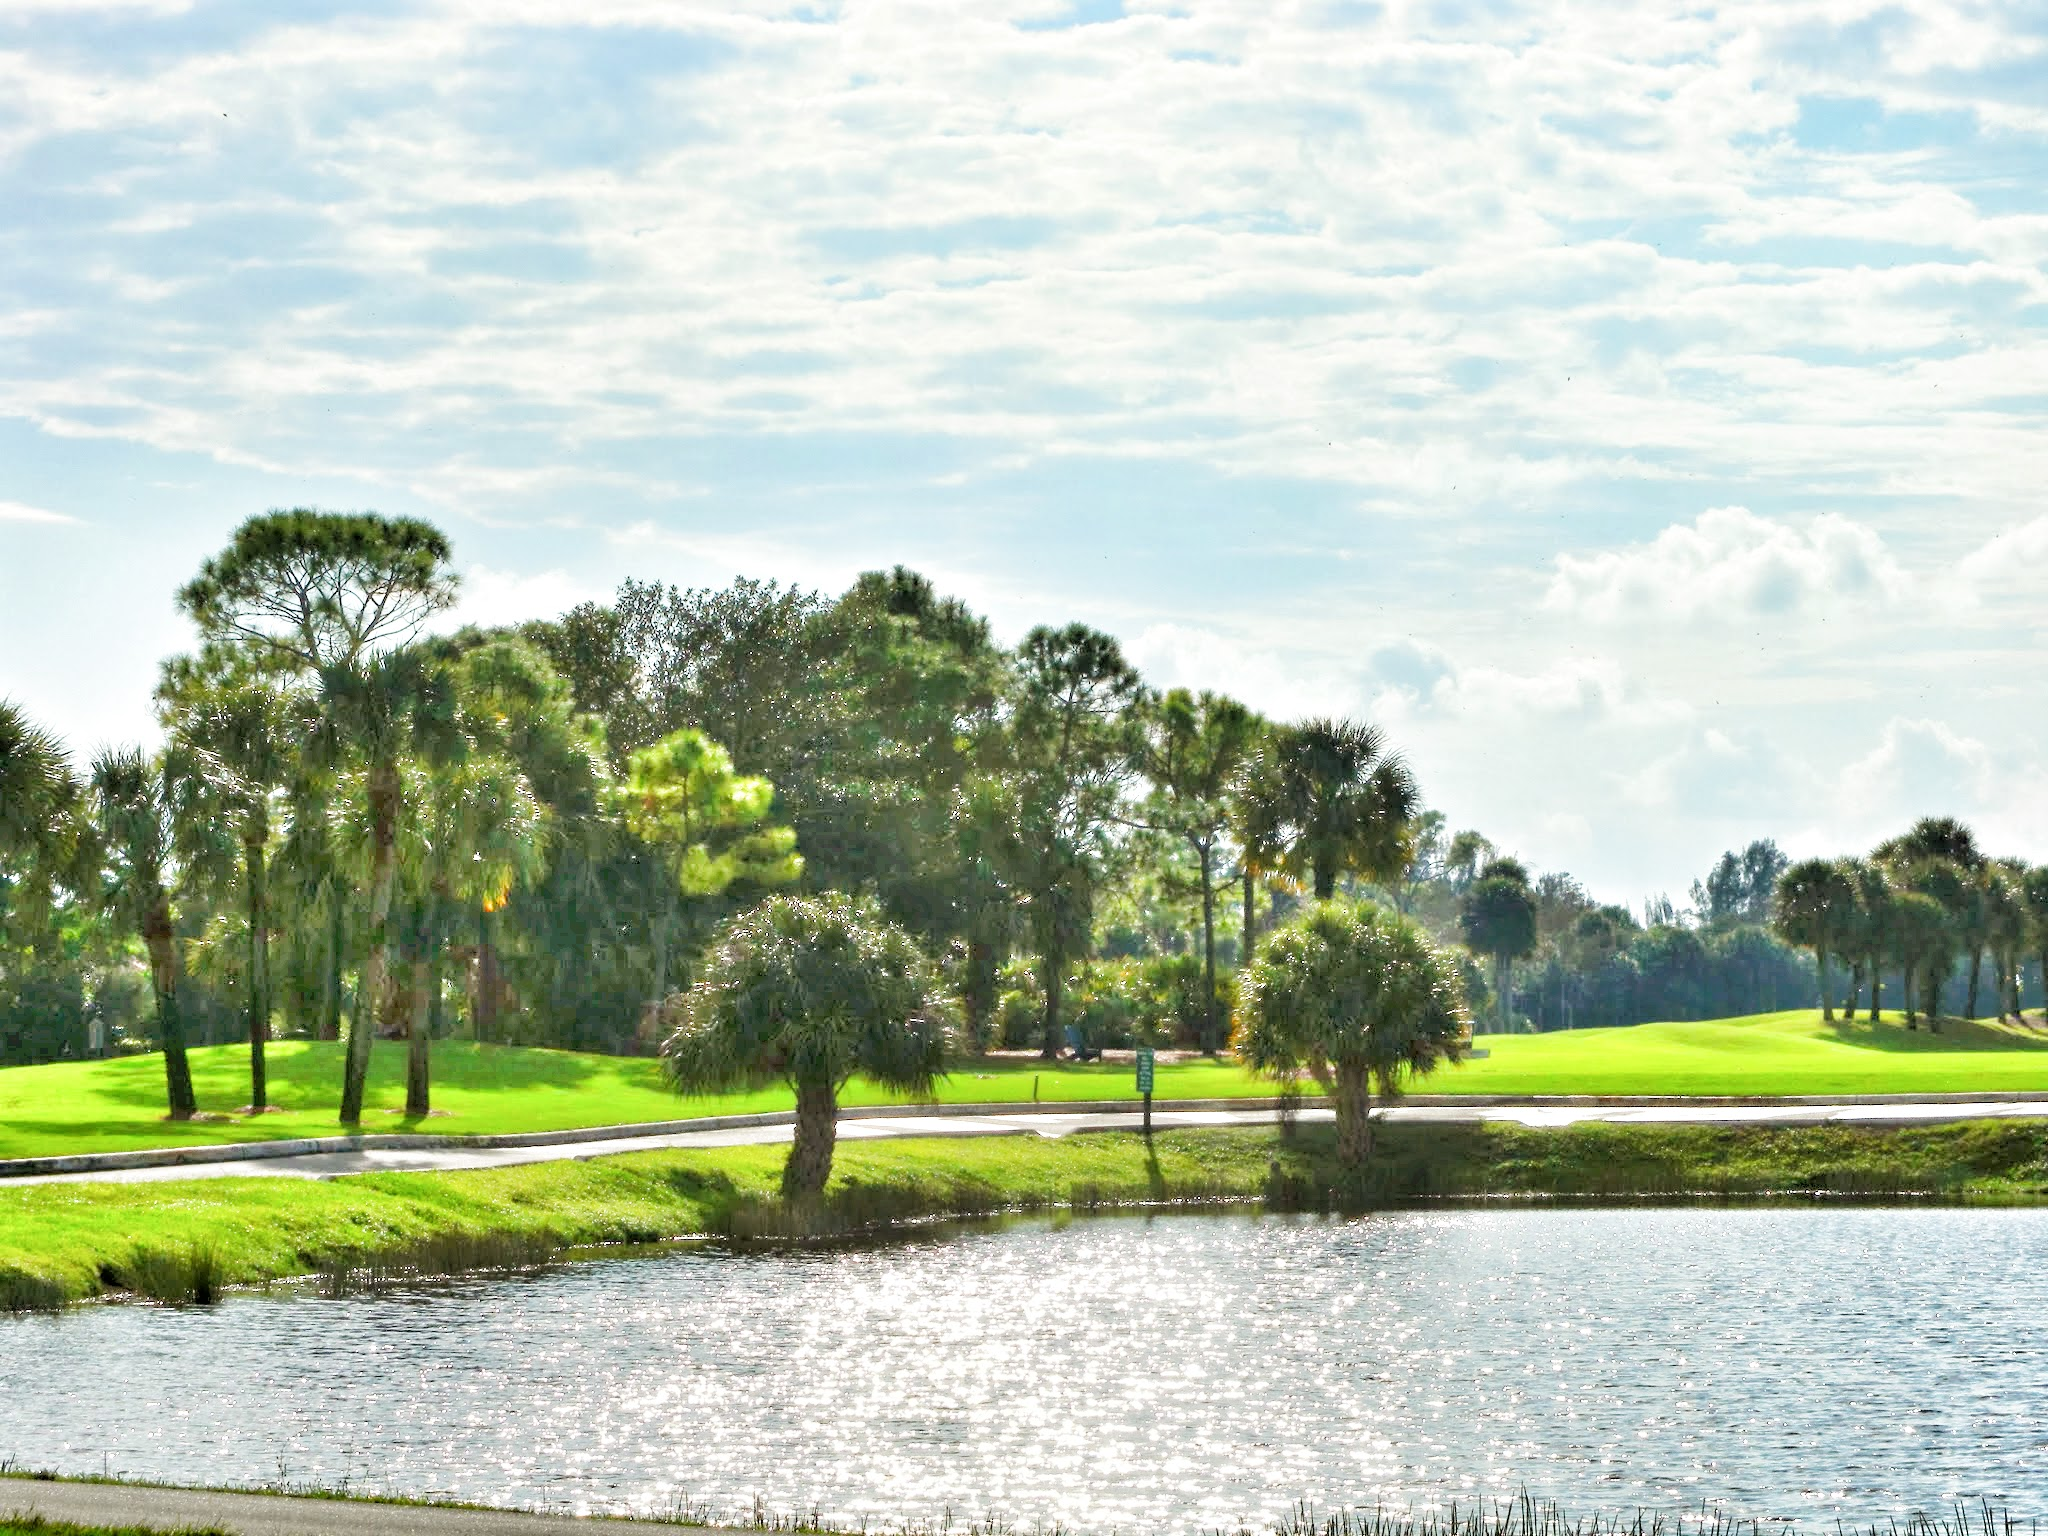 Madison Green Royal Palm Beach FL Homes For Sale - Florida IPI International Properties and Investments